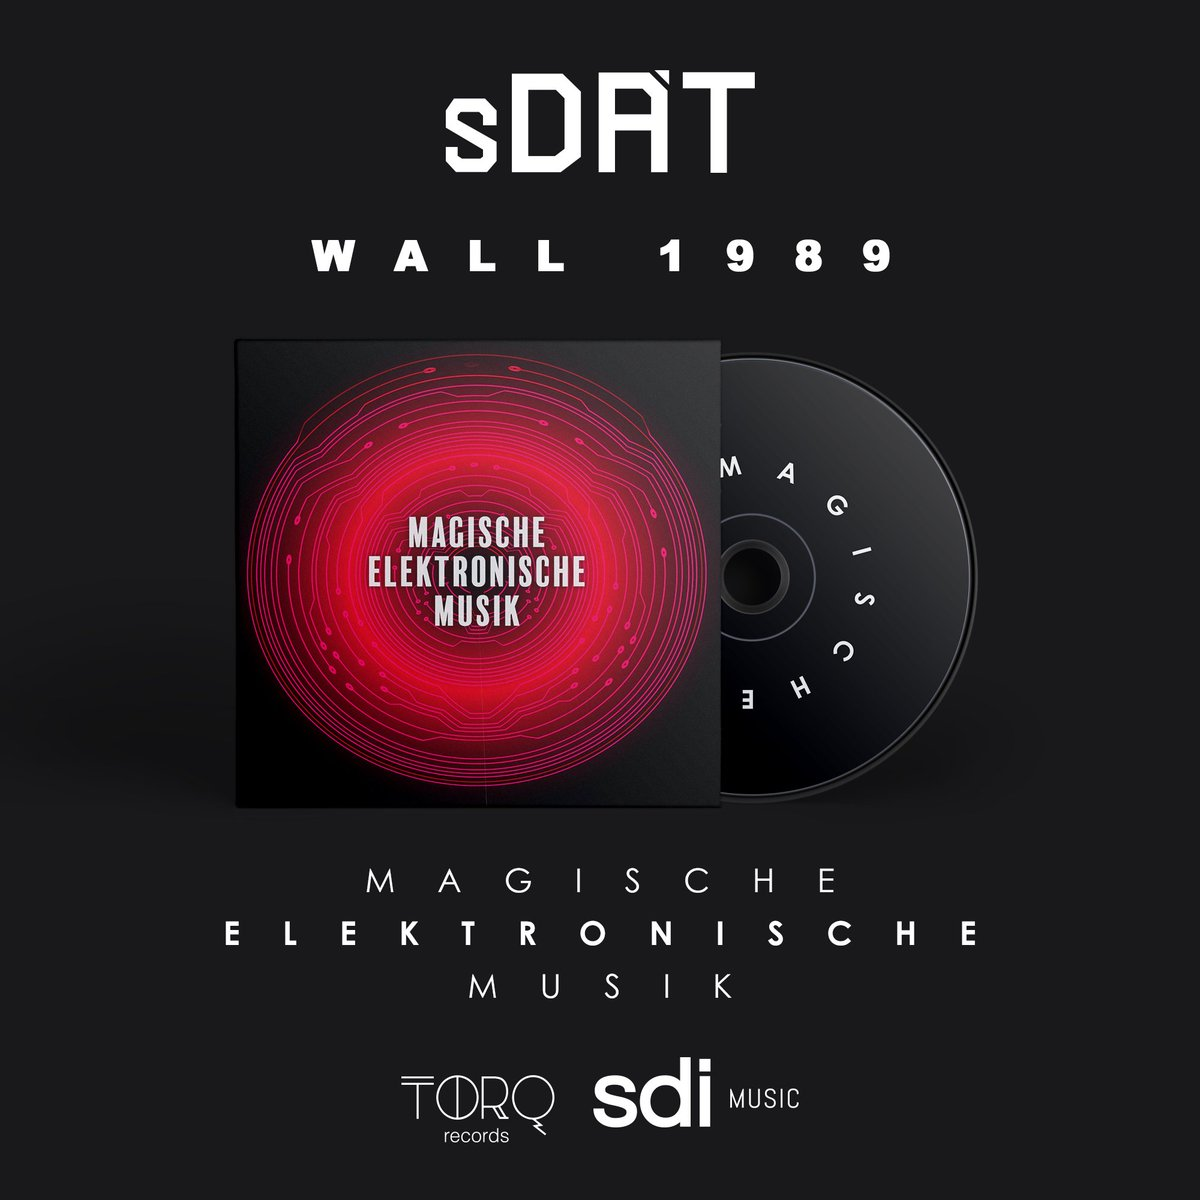 Wall 1989 by Sdat, is on the Magische Elektronische Musik Compilation and the genre of the track is techno.  #techno #berlin #deutschland #berlinwall #berlinmusic #technomusic #night #life #recordlabel #subculture #track #newtrack #wave #street #electro #electroclash #eurodancepic.twitter.com/3AHlFHgwrC